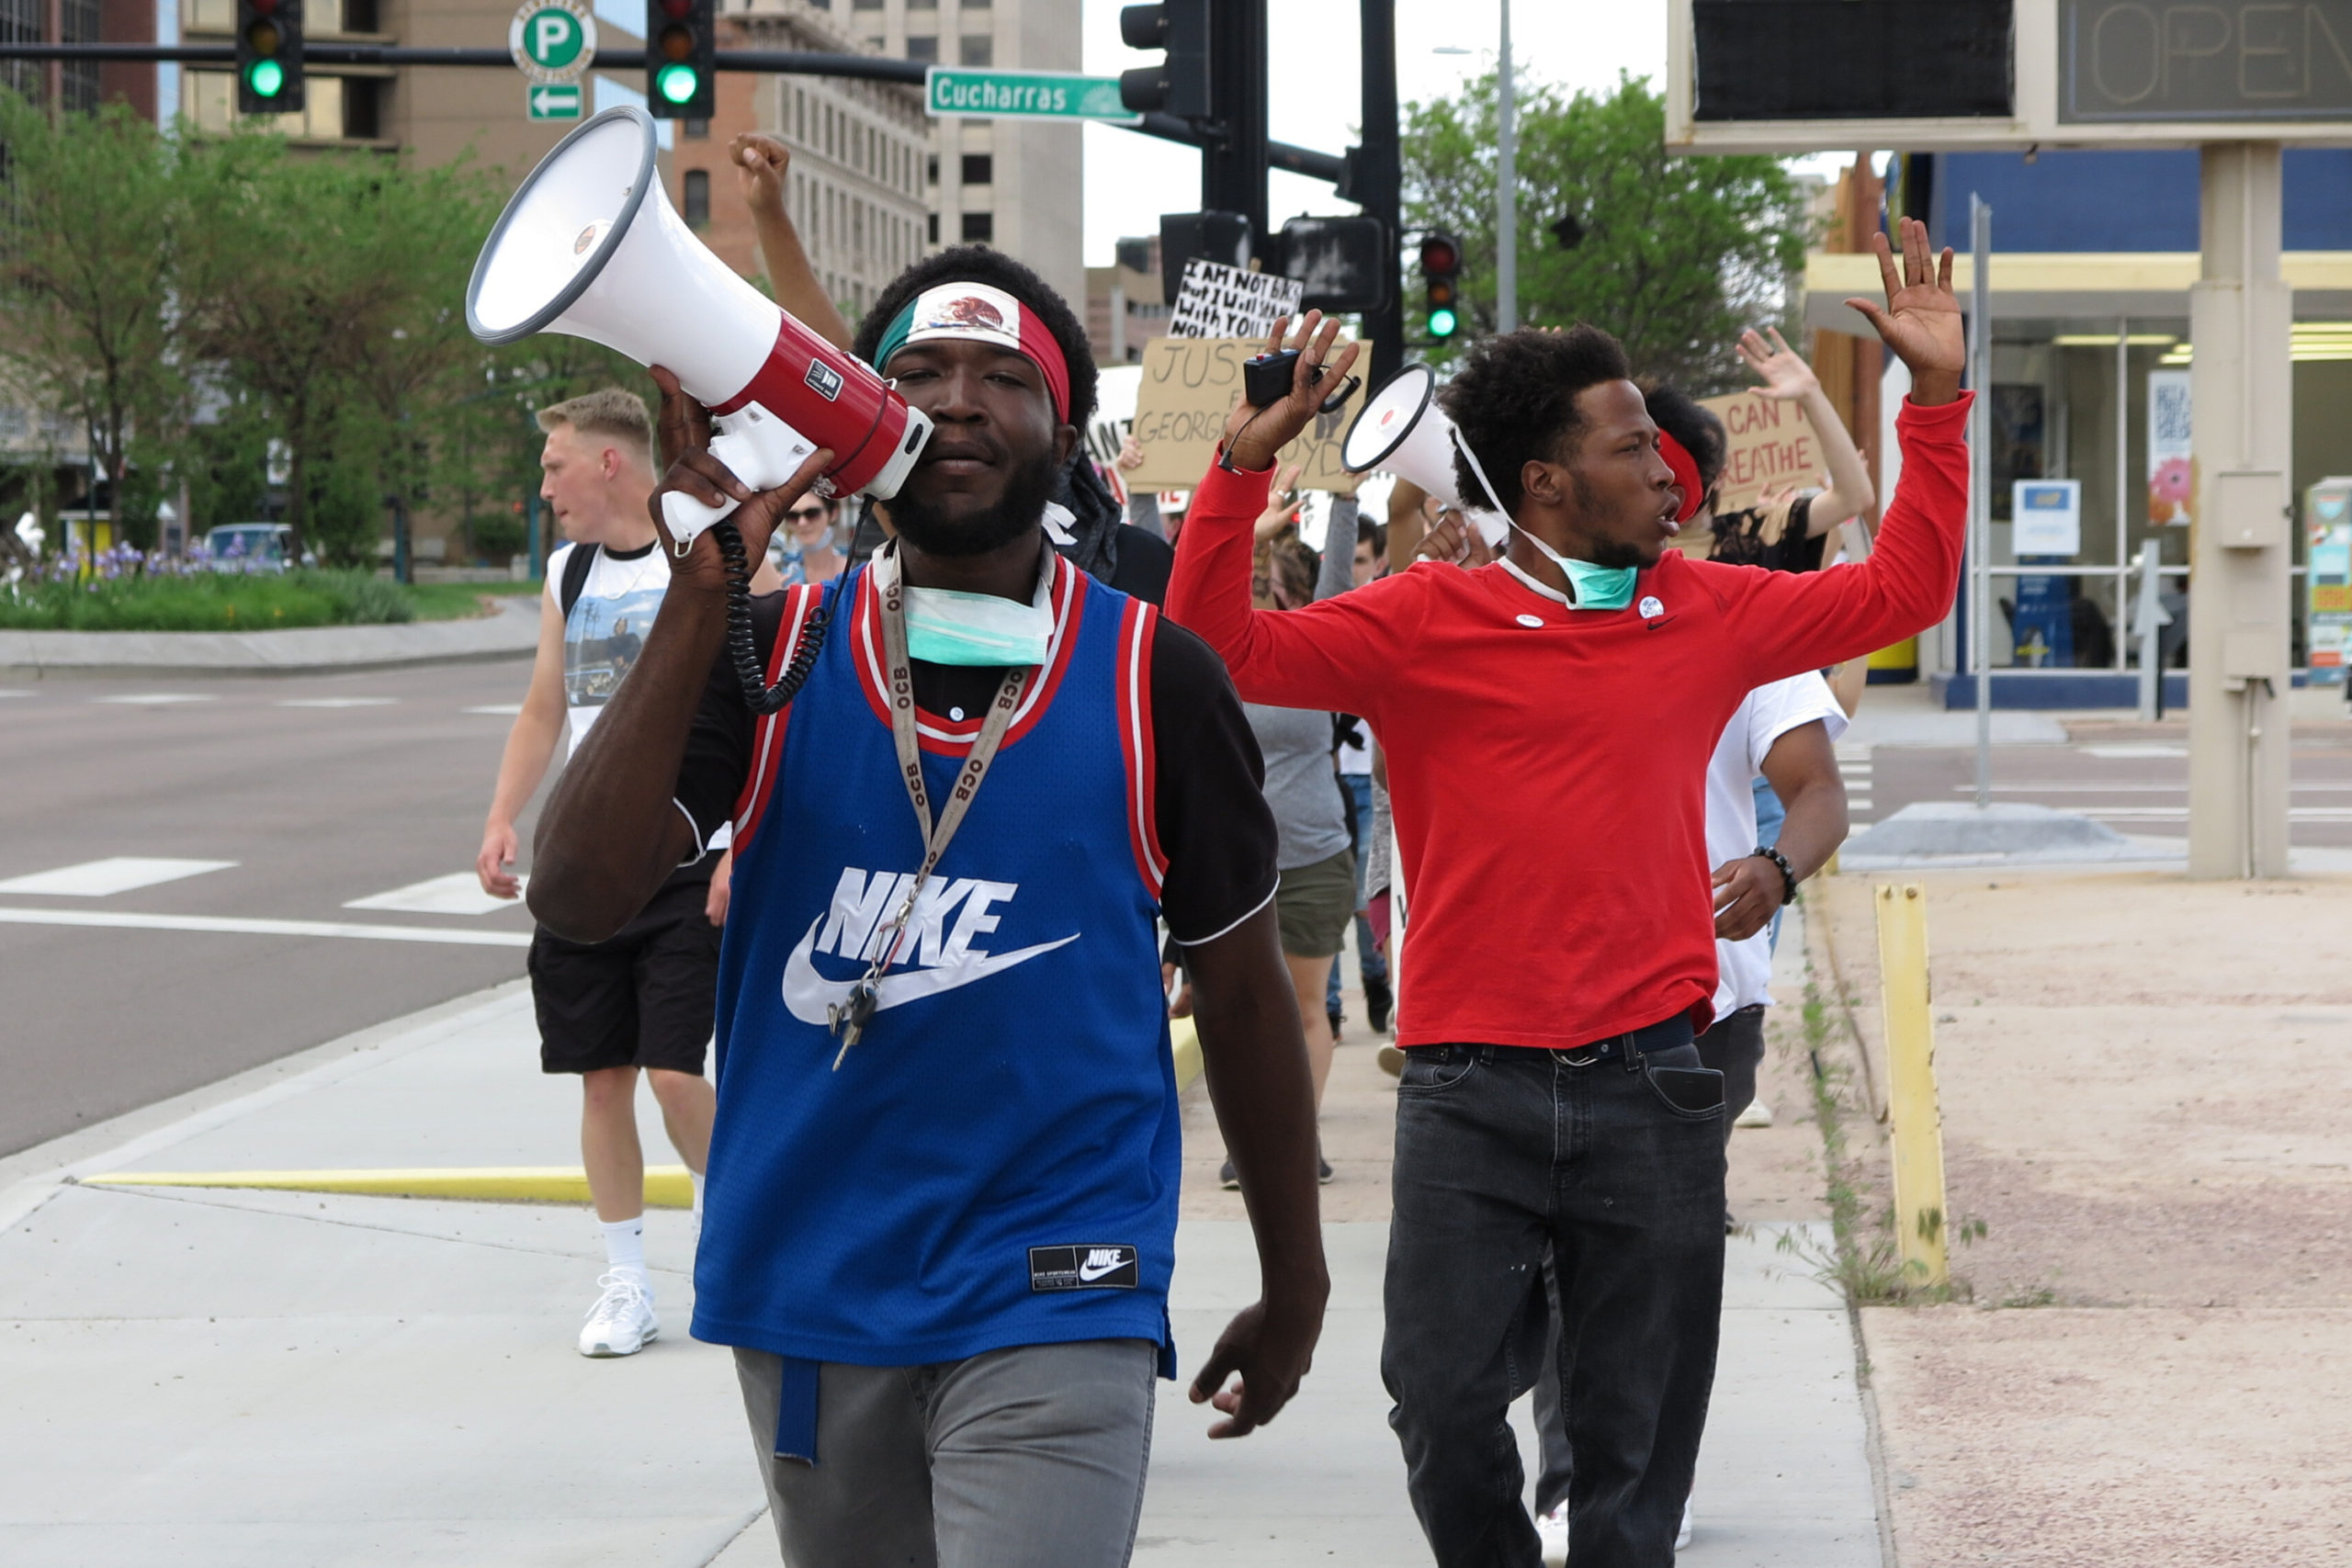 An organizer leads protesters toward the Colorado Springs Police Operations Center on June 1, 2020. Monday's protests were quieter after a weekend of civil unrest in the state's second-largest city.